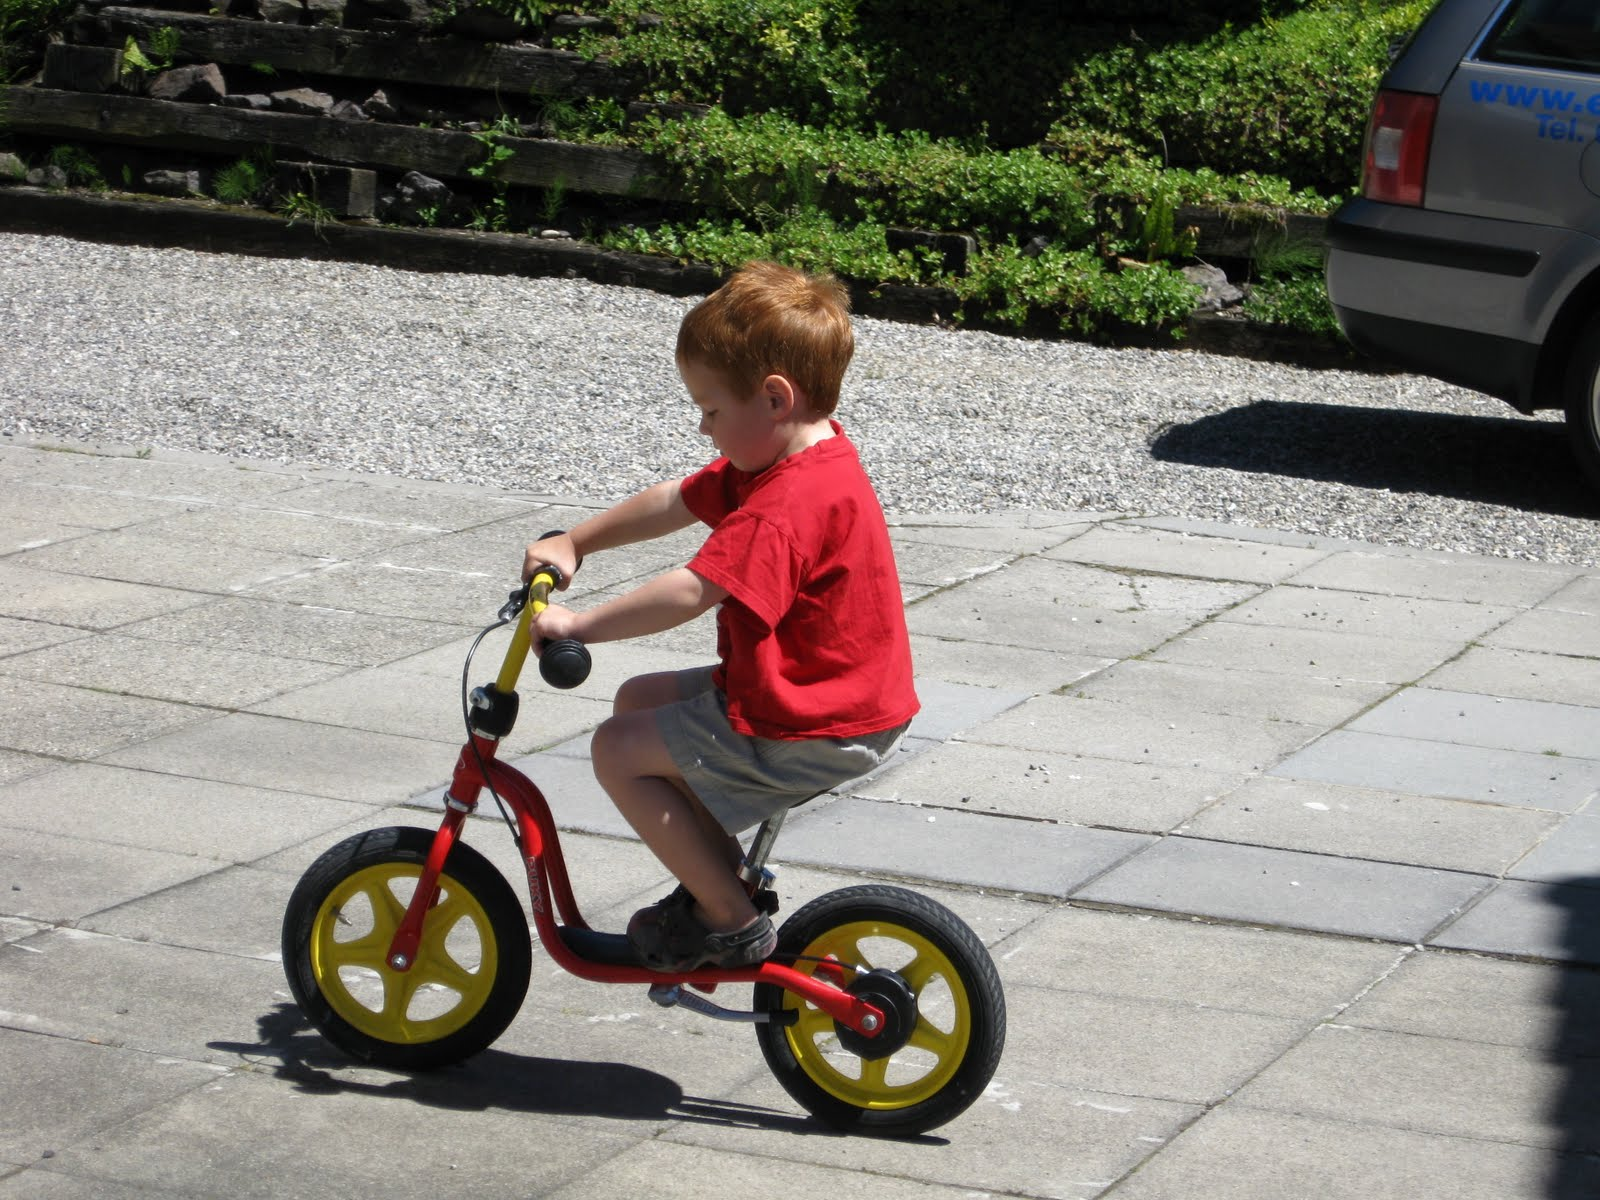 Children riding bicycle photo